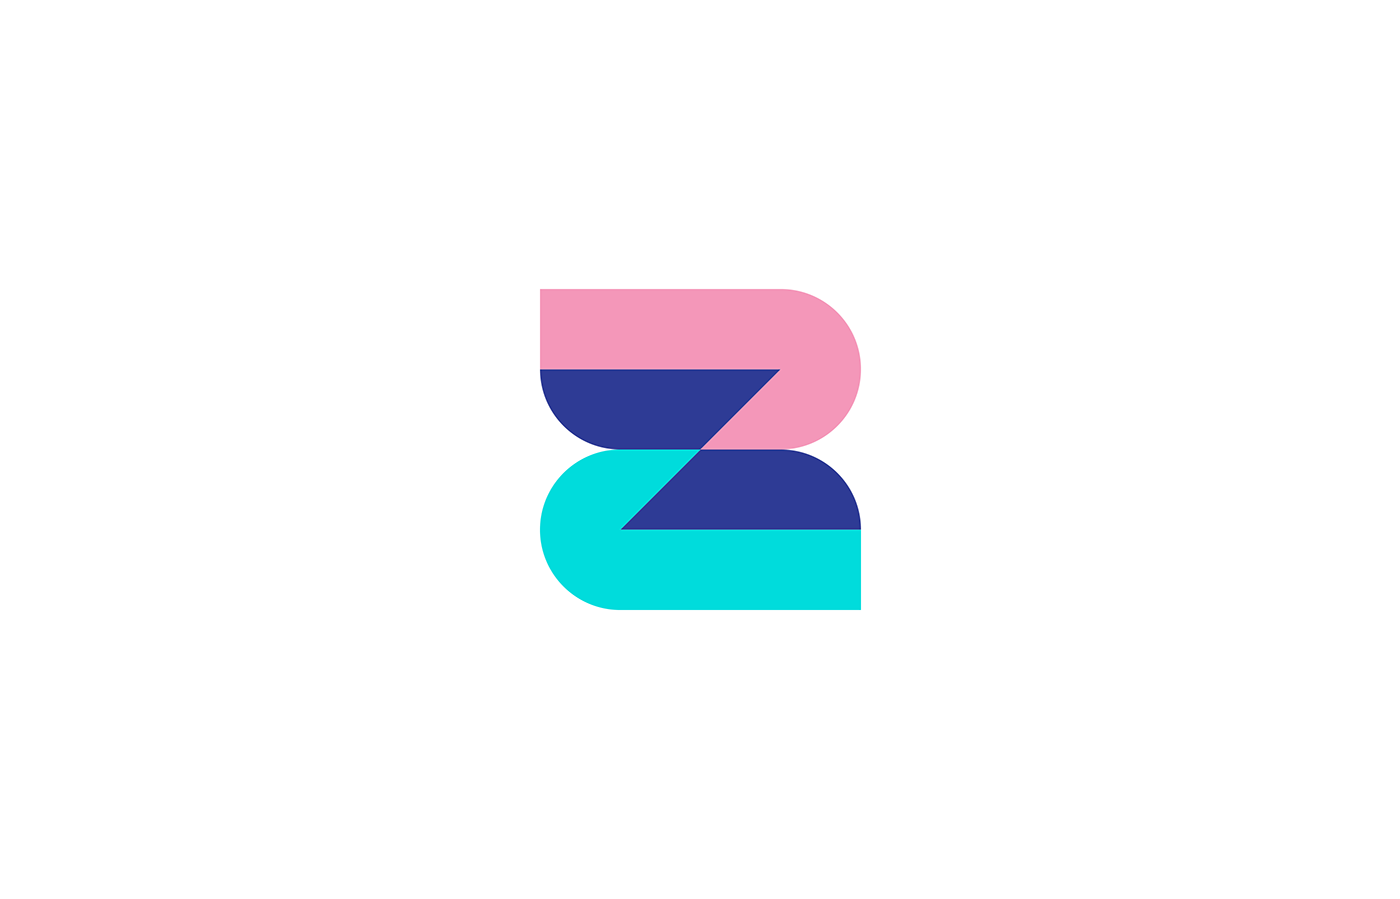 mobile bank logo icon featuring Z letter 3 colors: pink, teal and navy blue